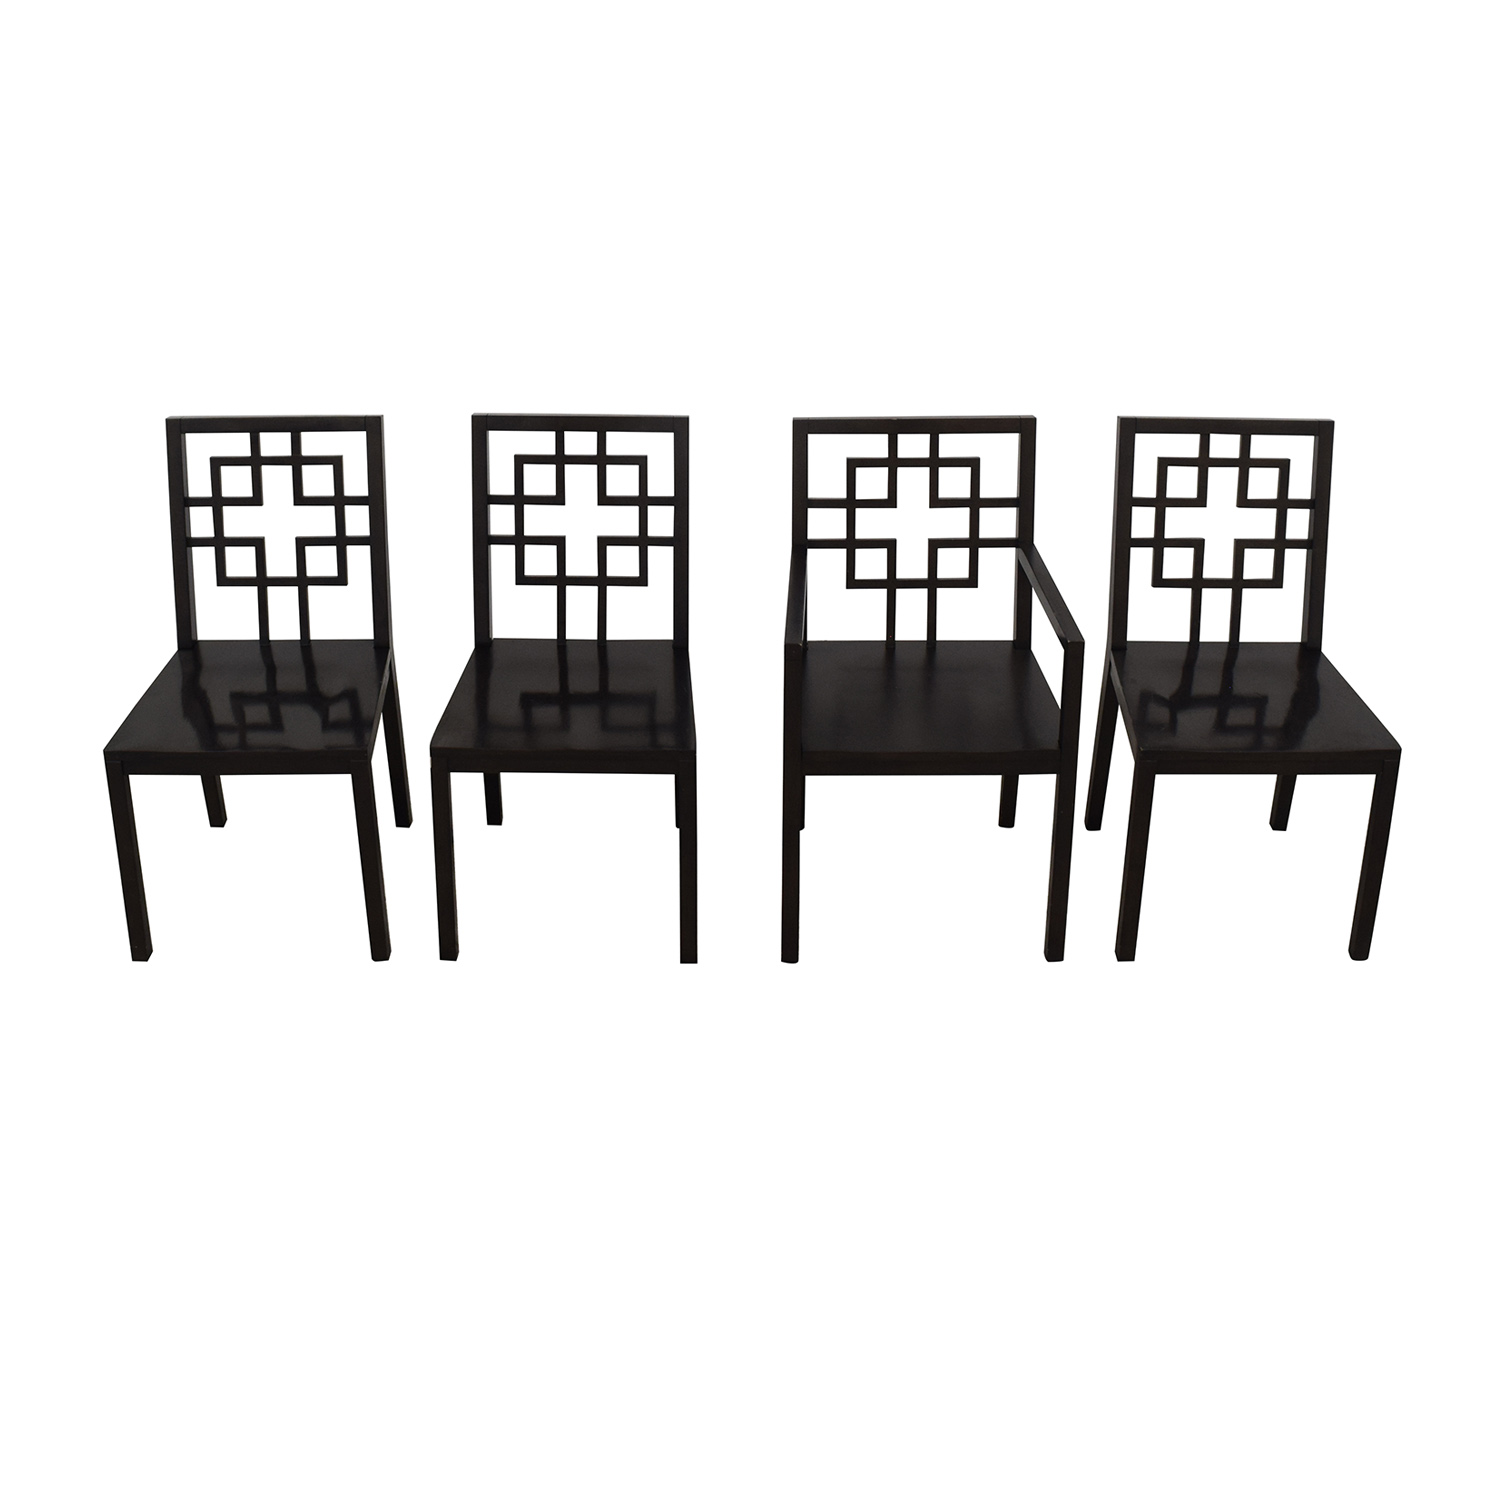 West Elm West Elm Overlapping Squares Chairs on sale